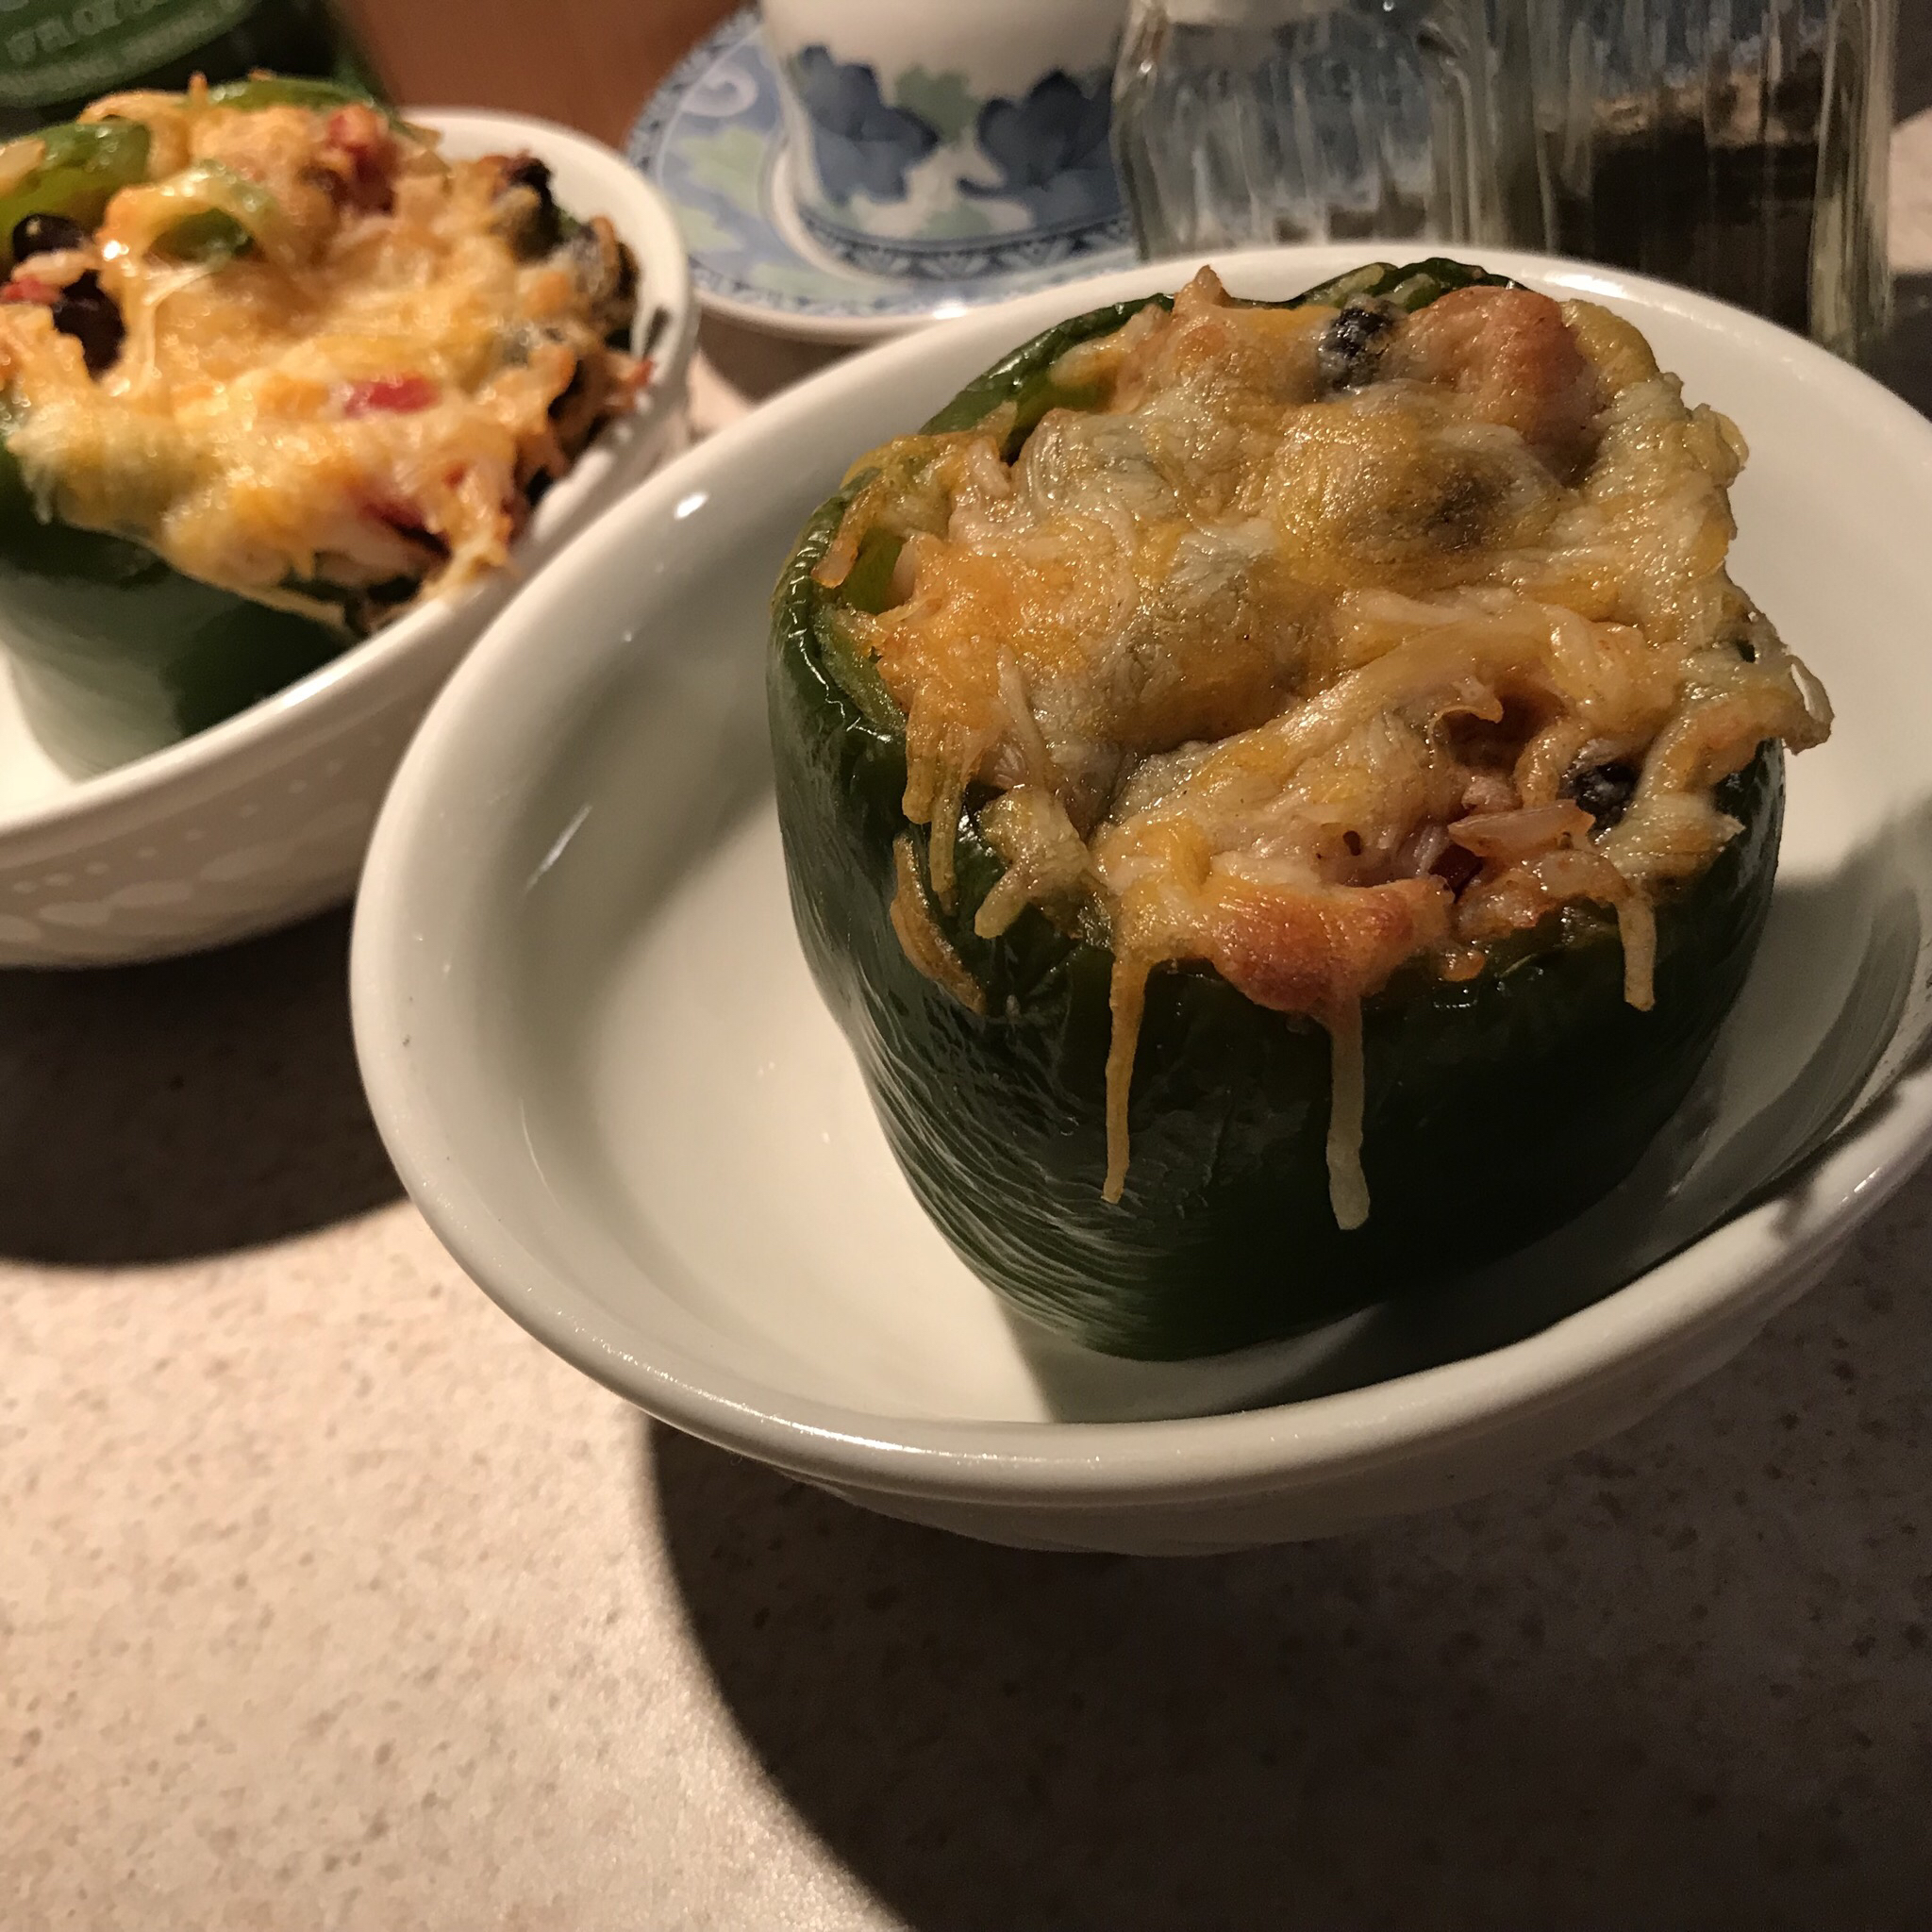 Vegetarian Mexican Inspired Stuffed Peppers M-Ann-M